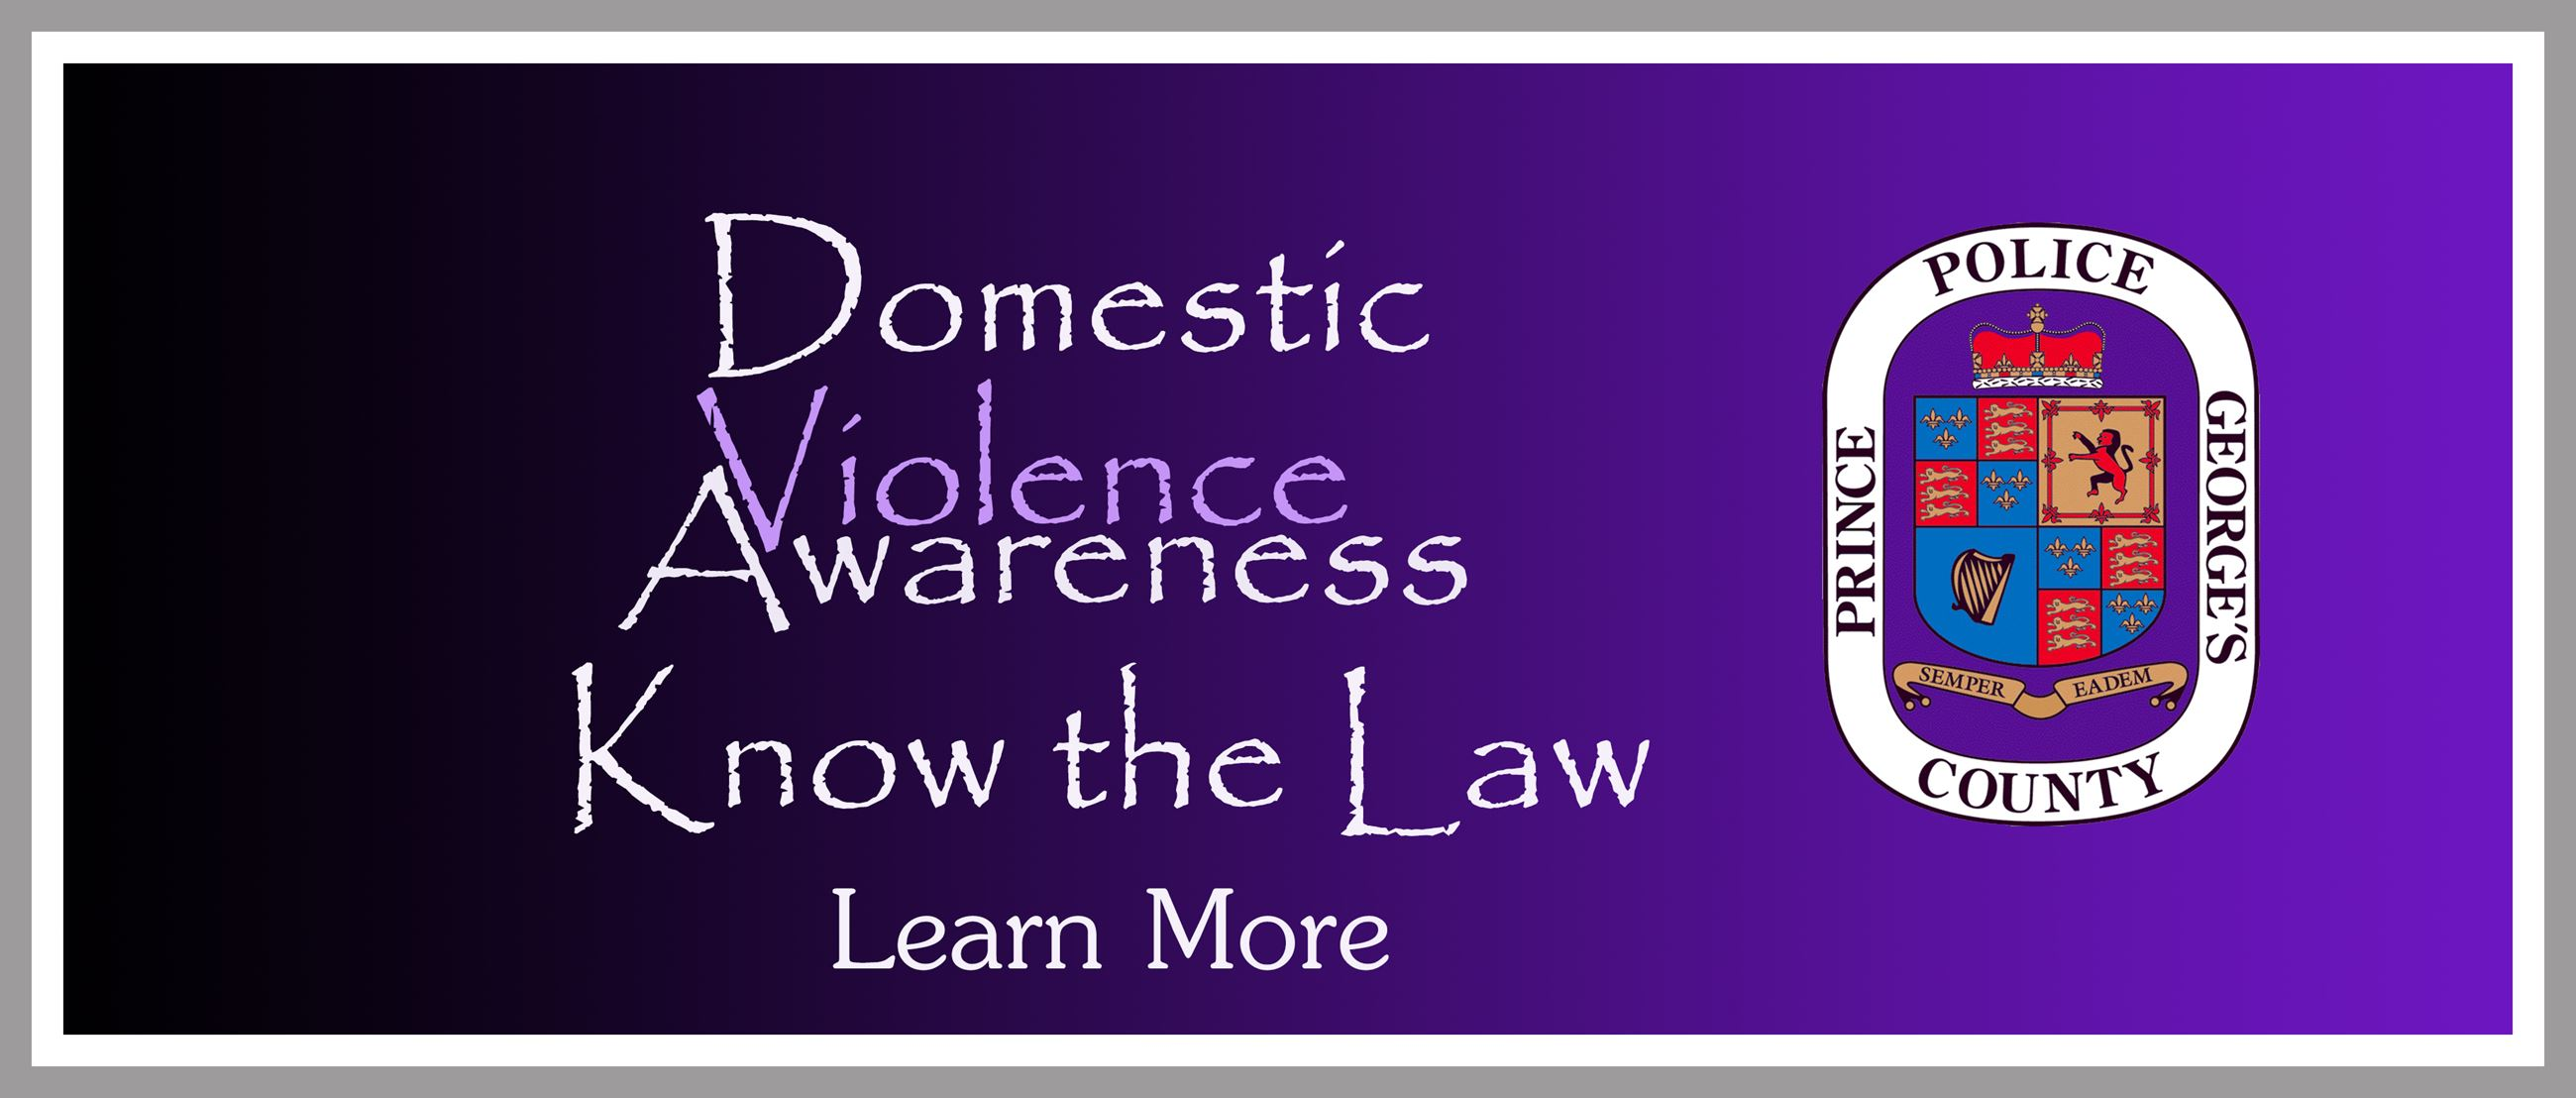 Domestic Violence_Resources_The Law